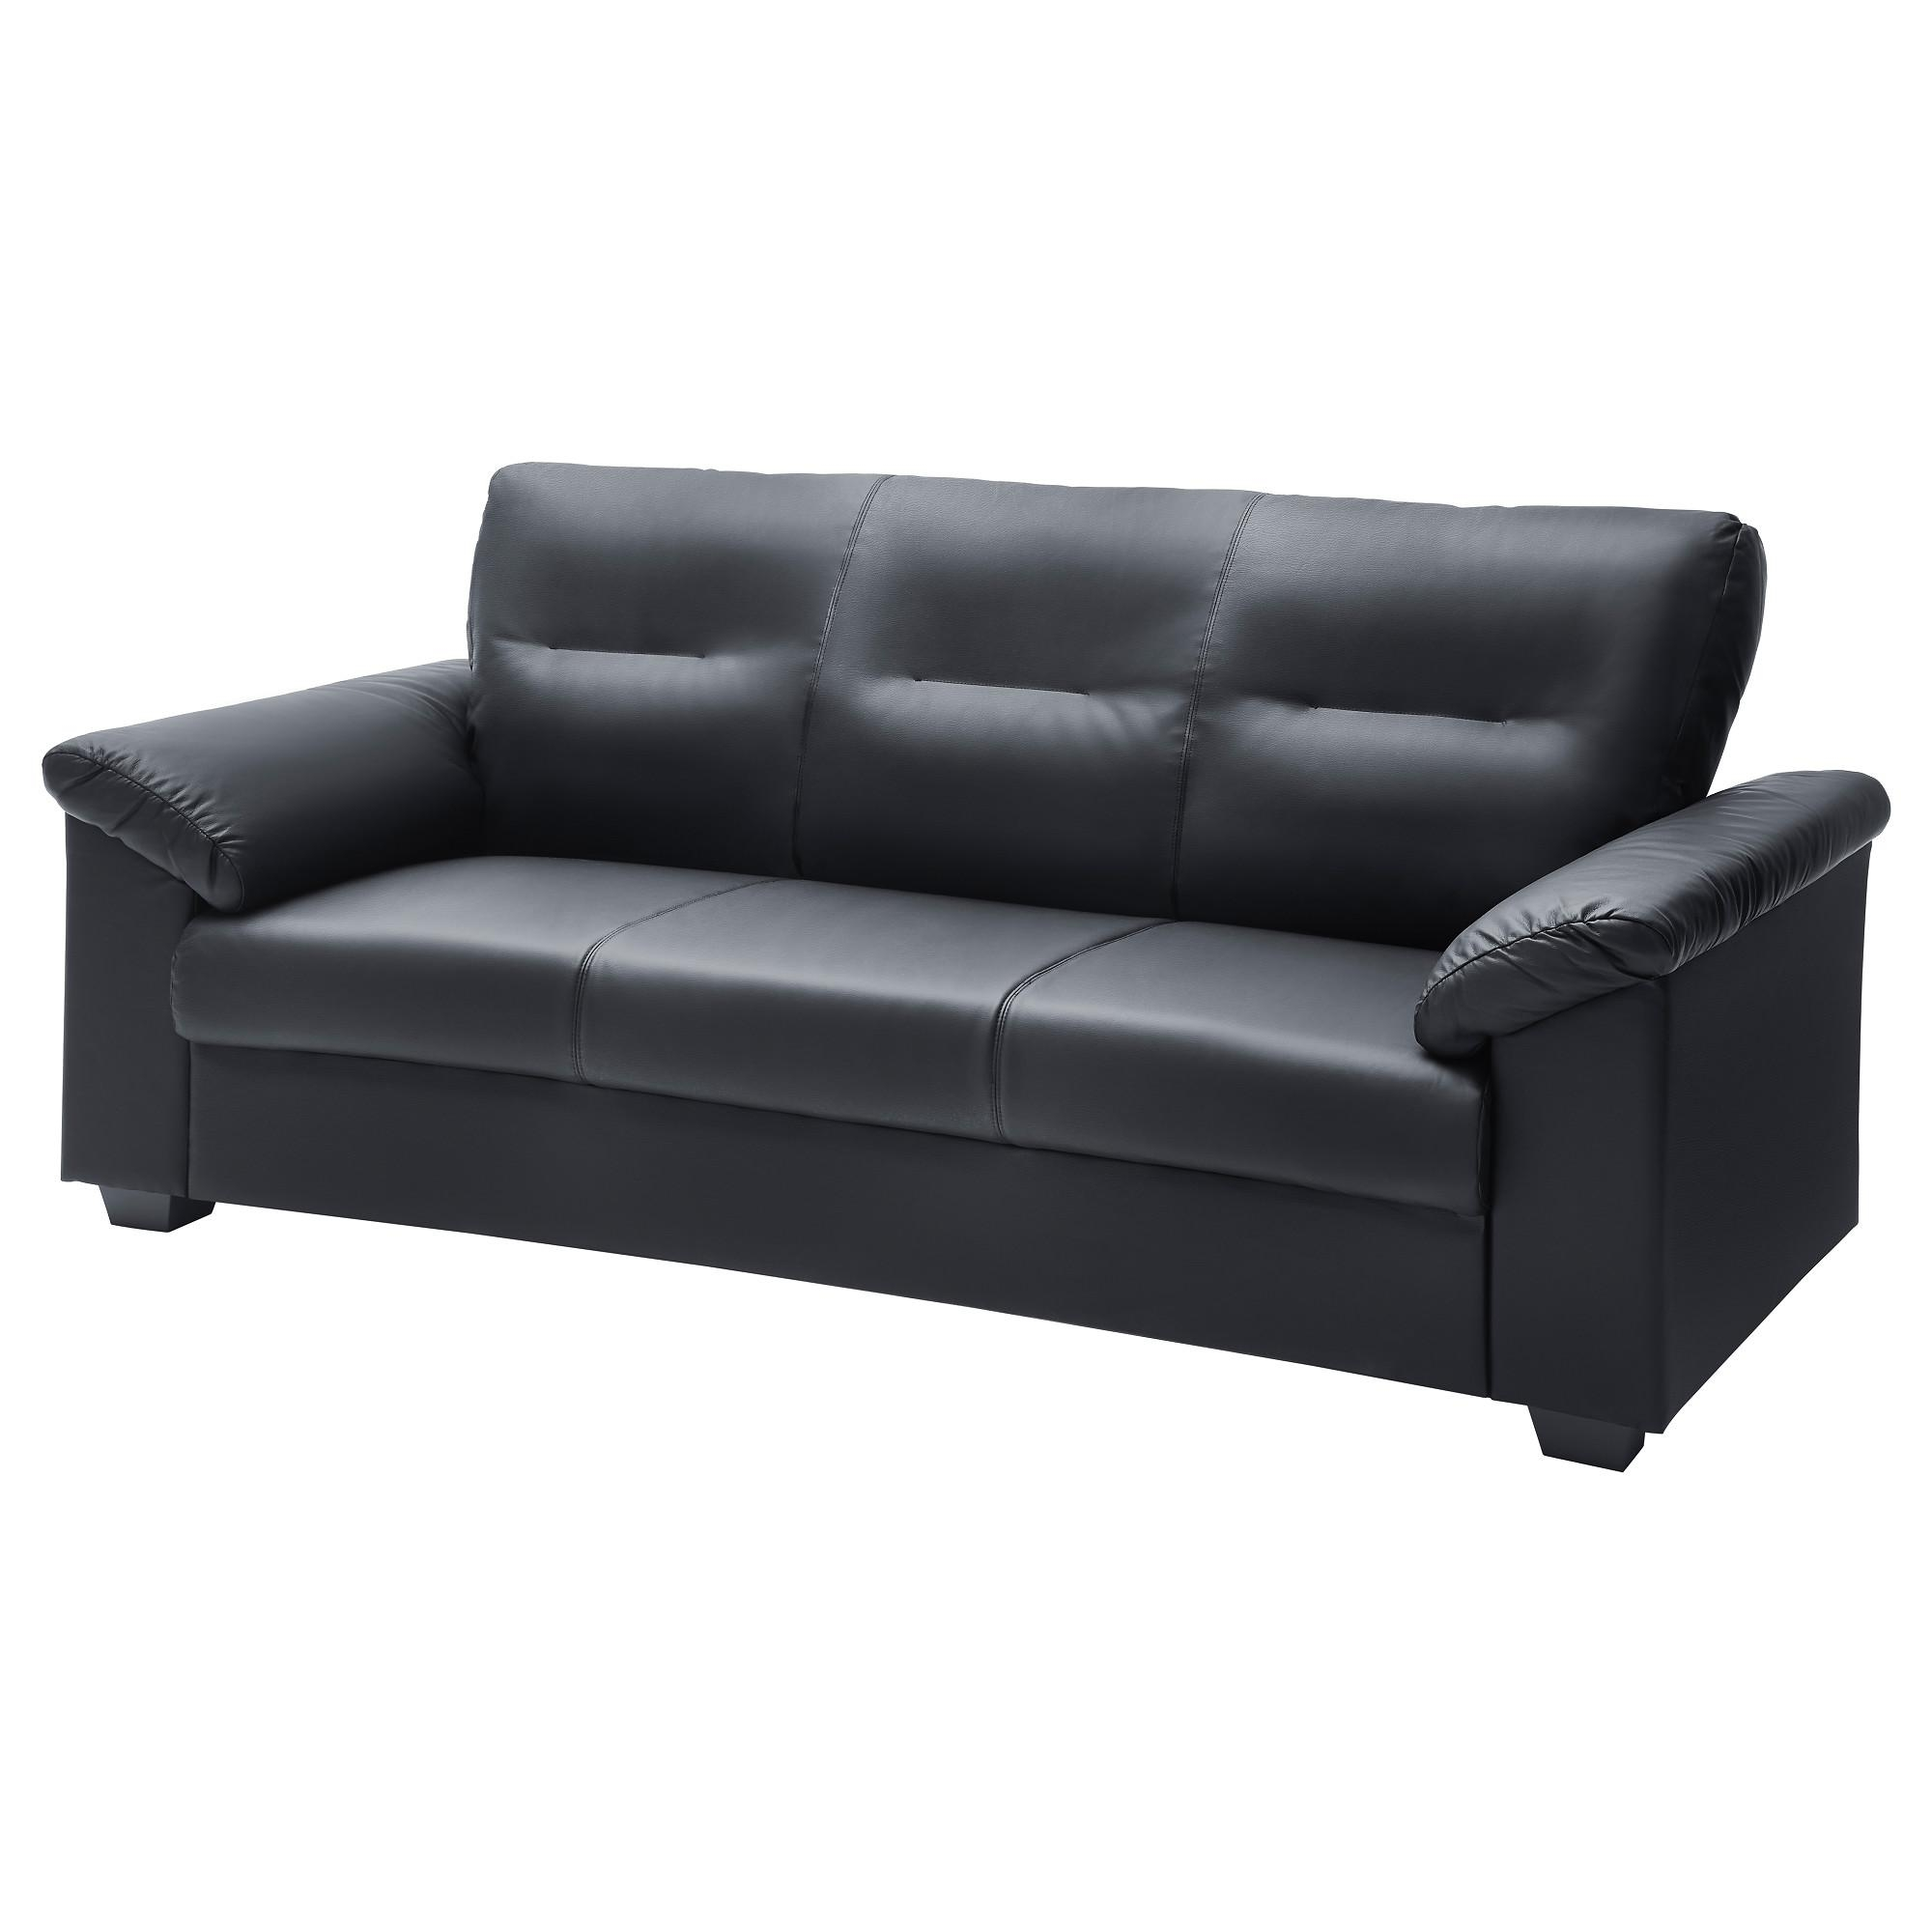 Leather & Faux Leather Couches, Chairs & Ottomans – Ikea Throughout Black And White Sofas (View 19 of 20)